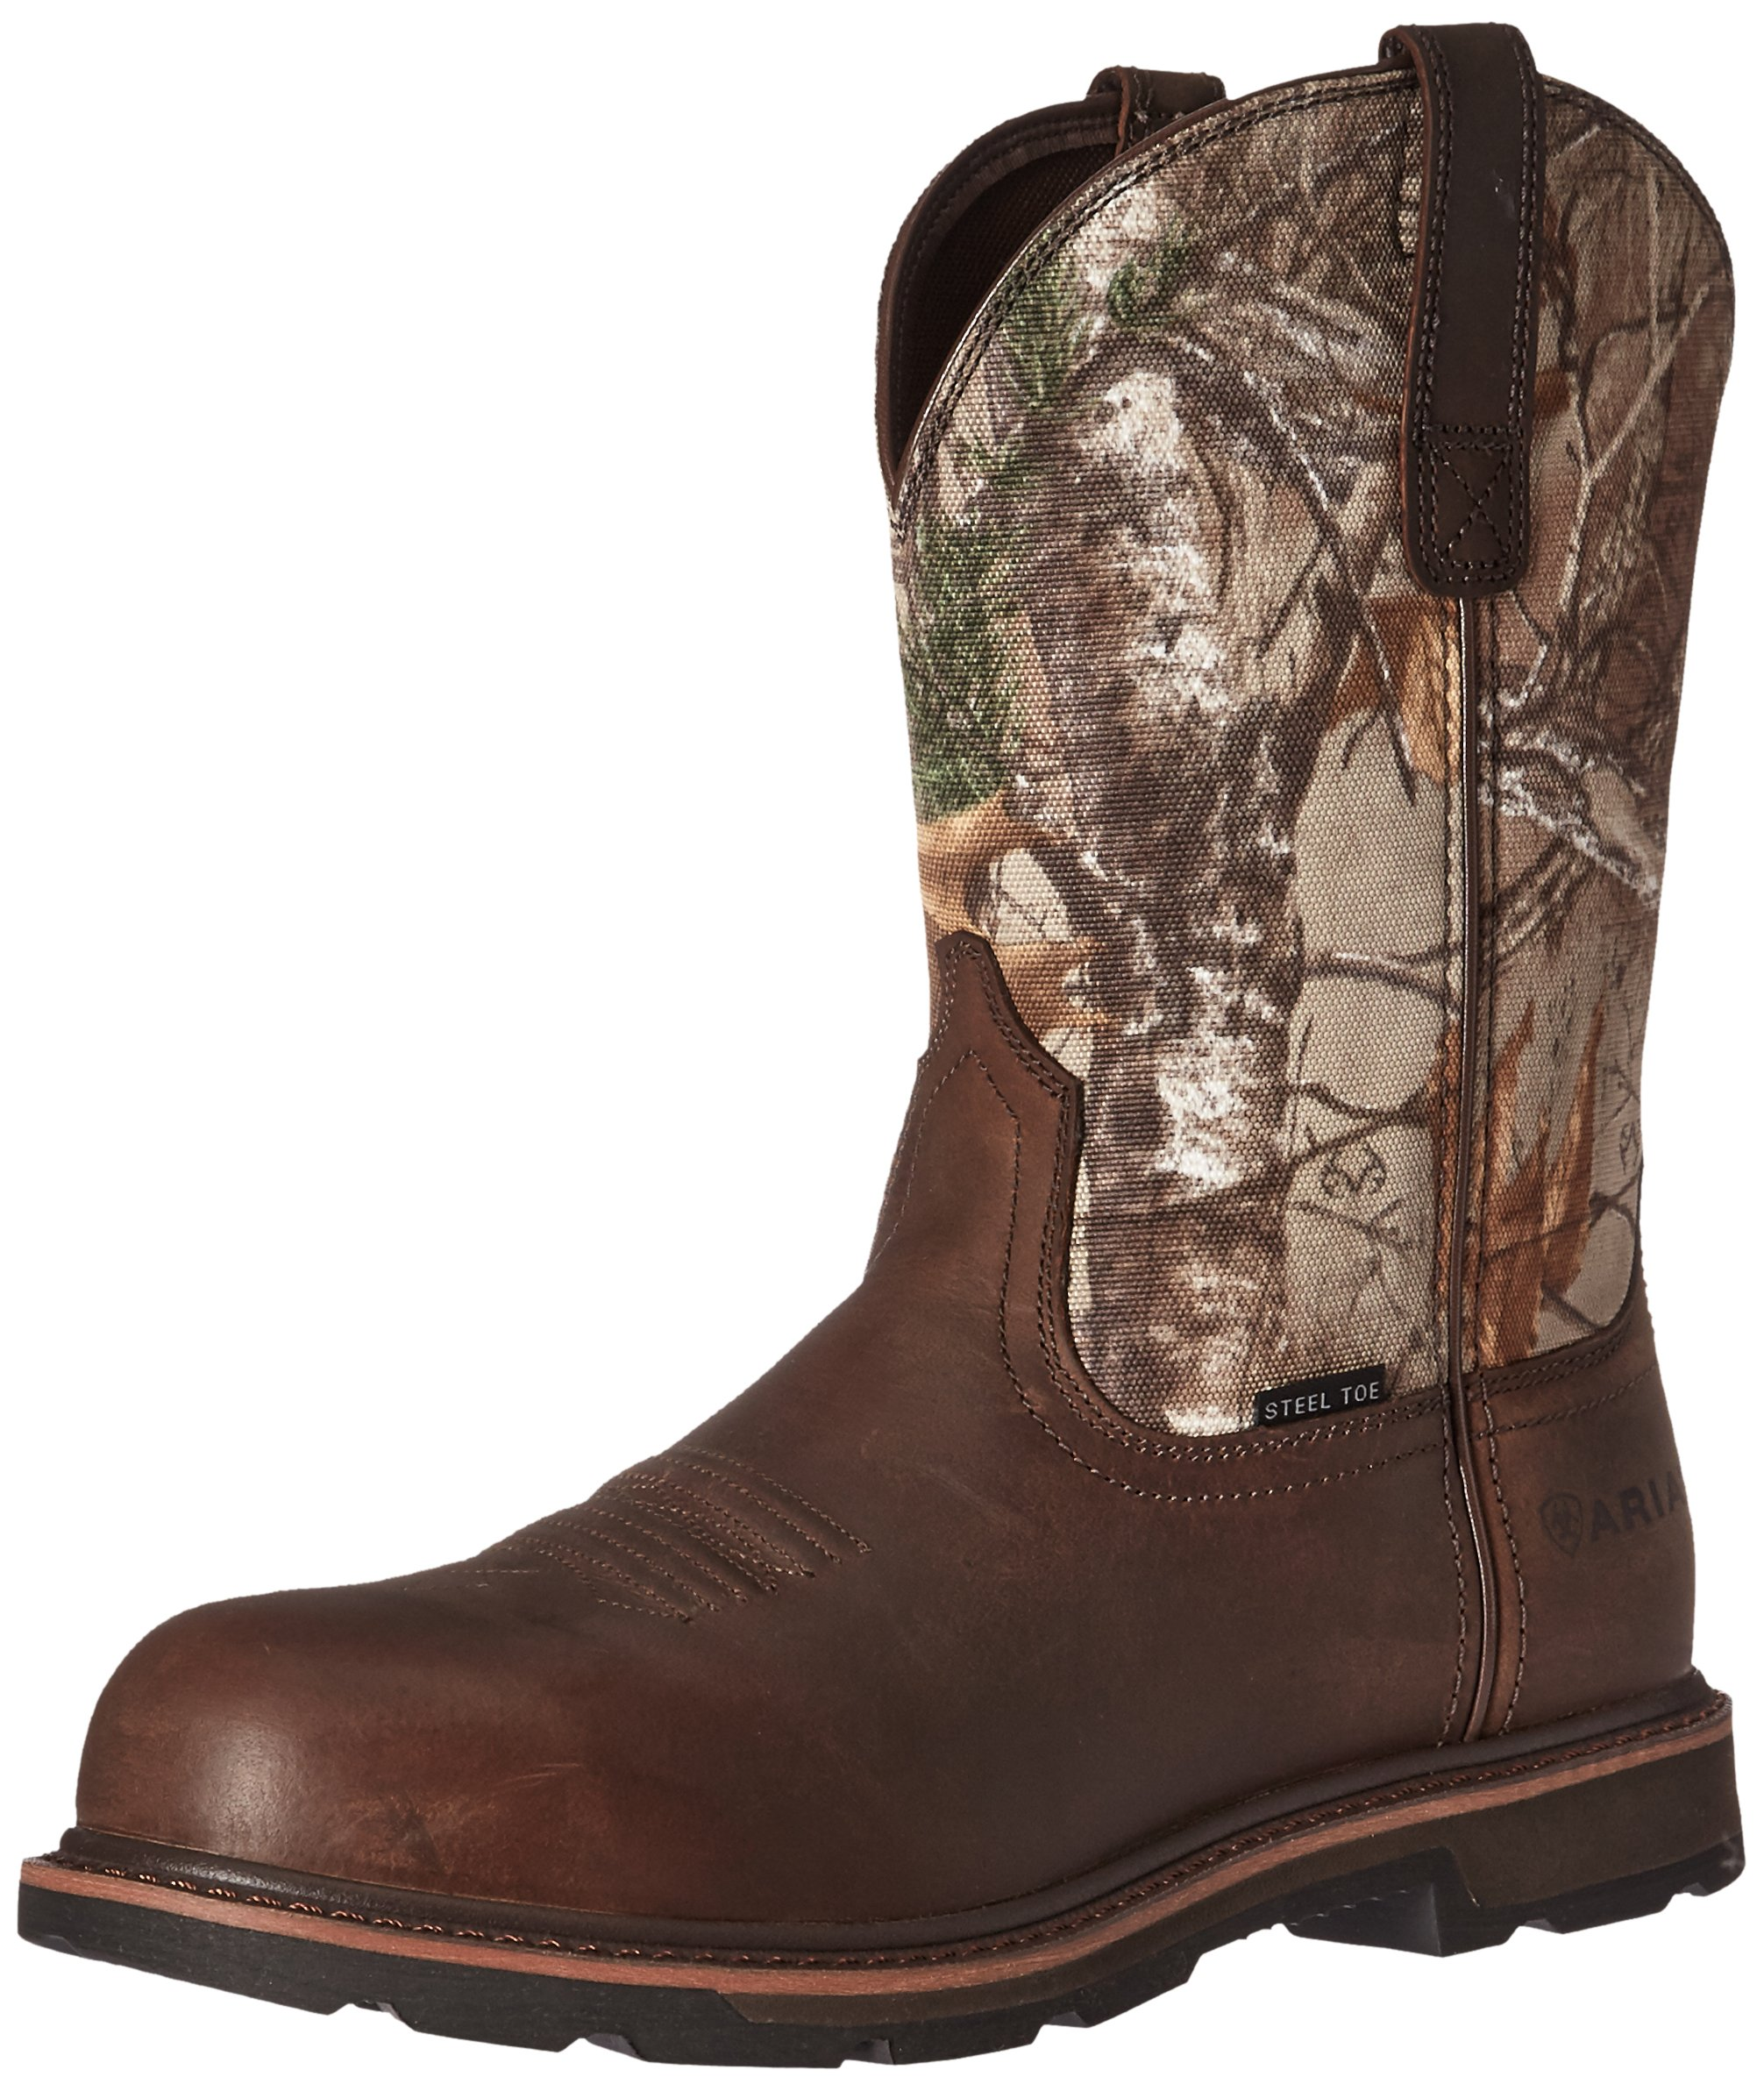 Ariat Work Men's Groundbreaker Pull-On Steel Toe Work Boot, Brown/Real Tree Extra, 7.5 D US